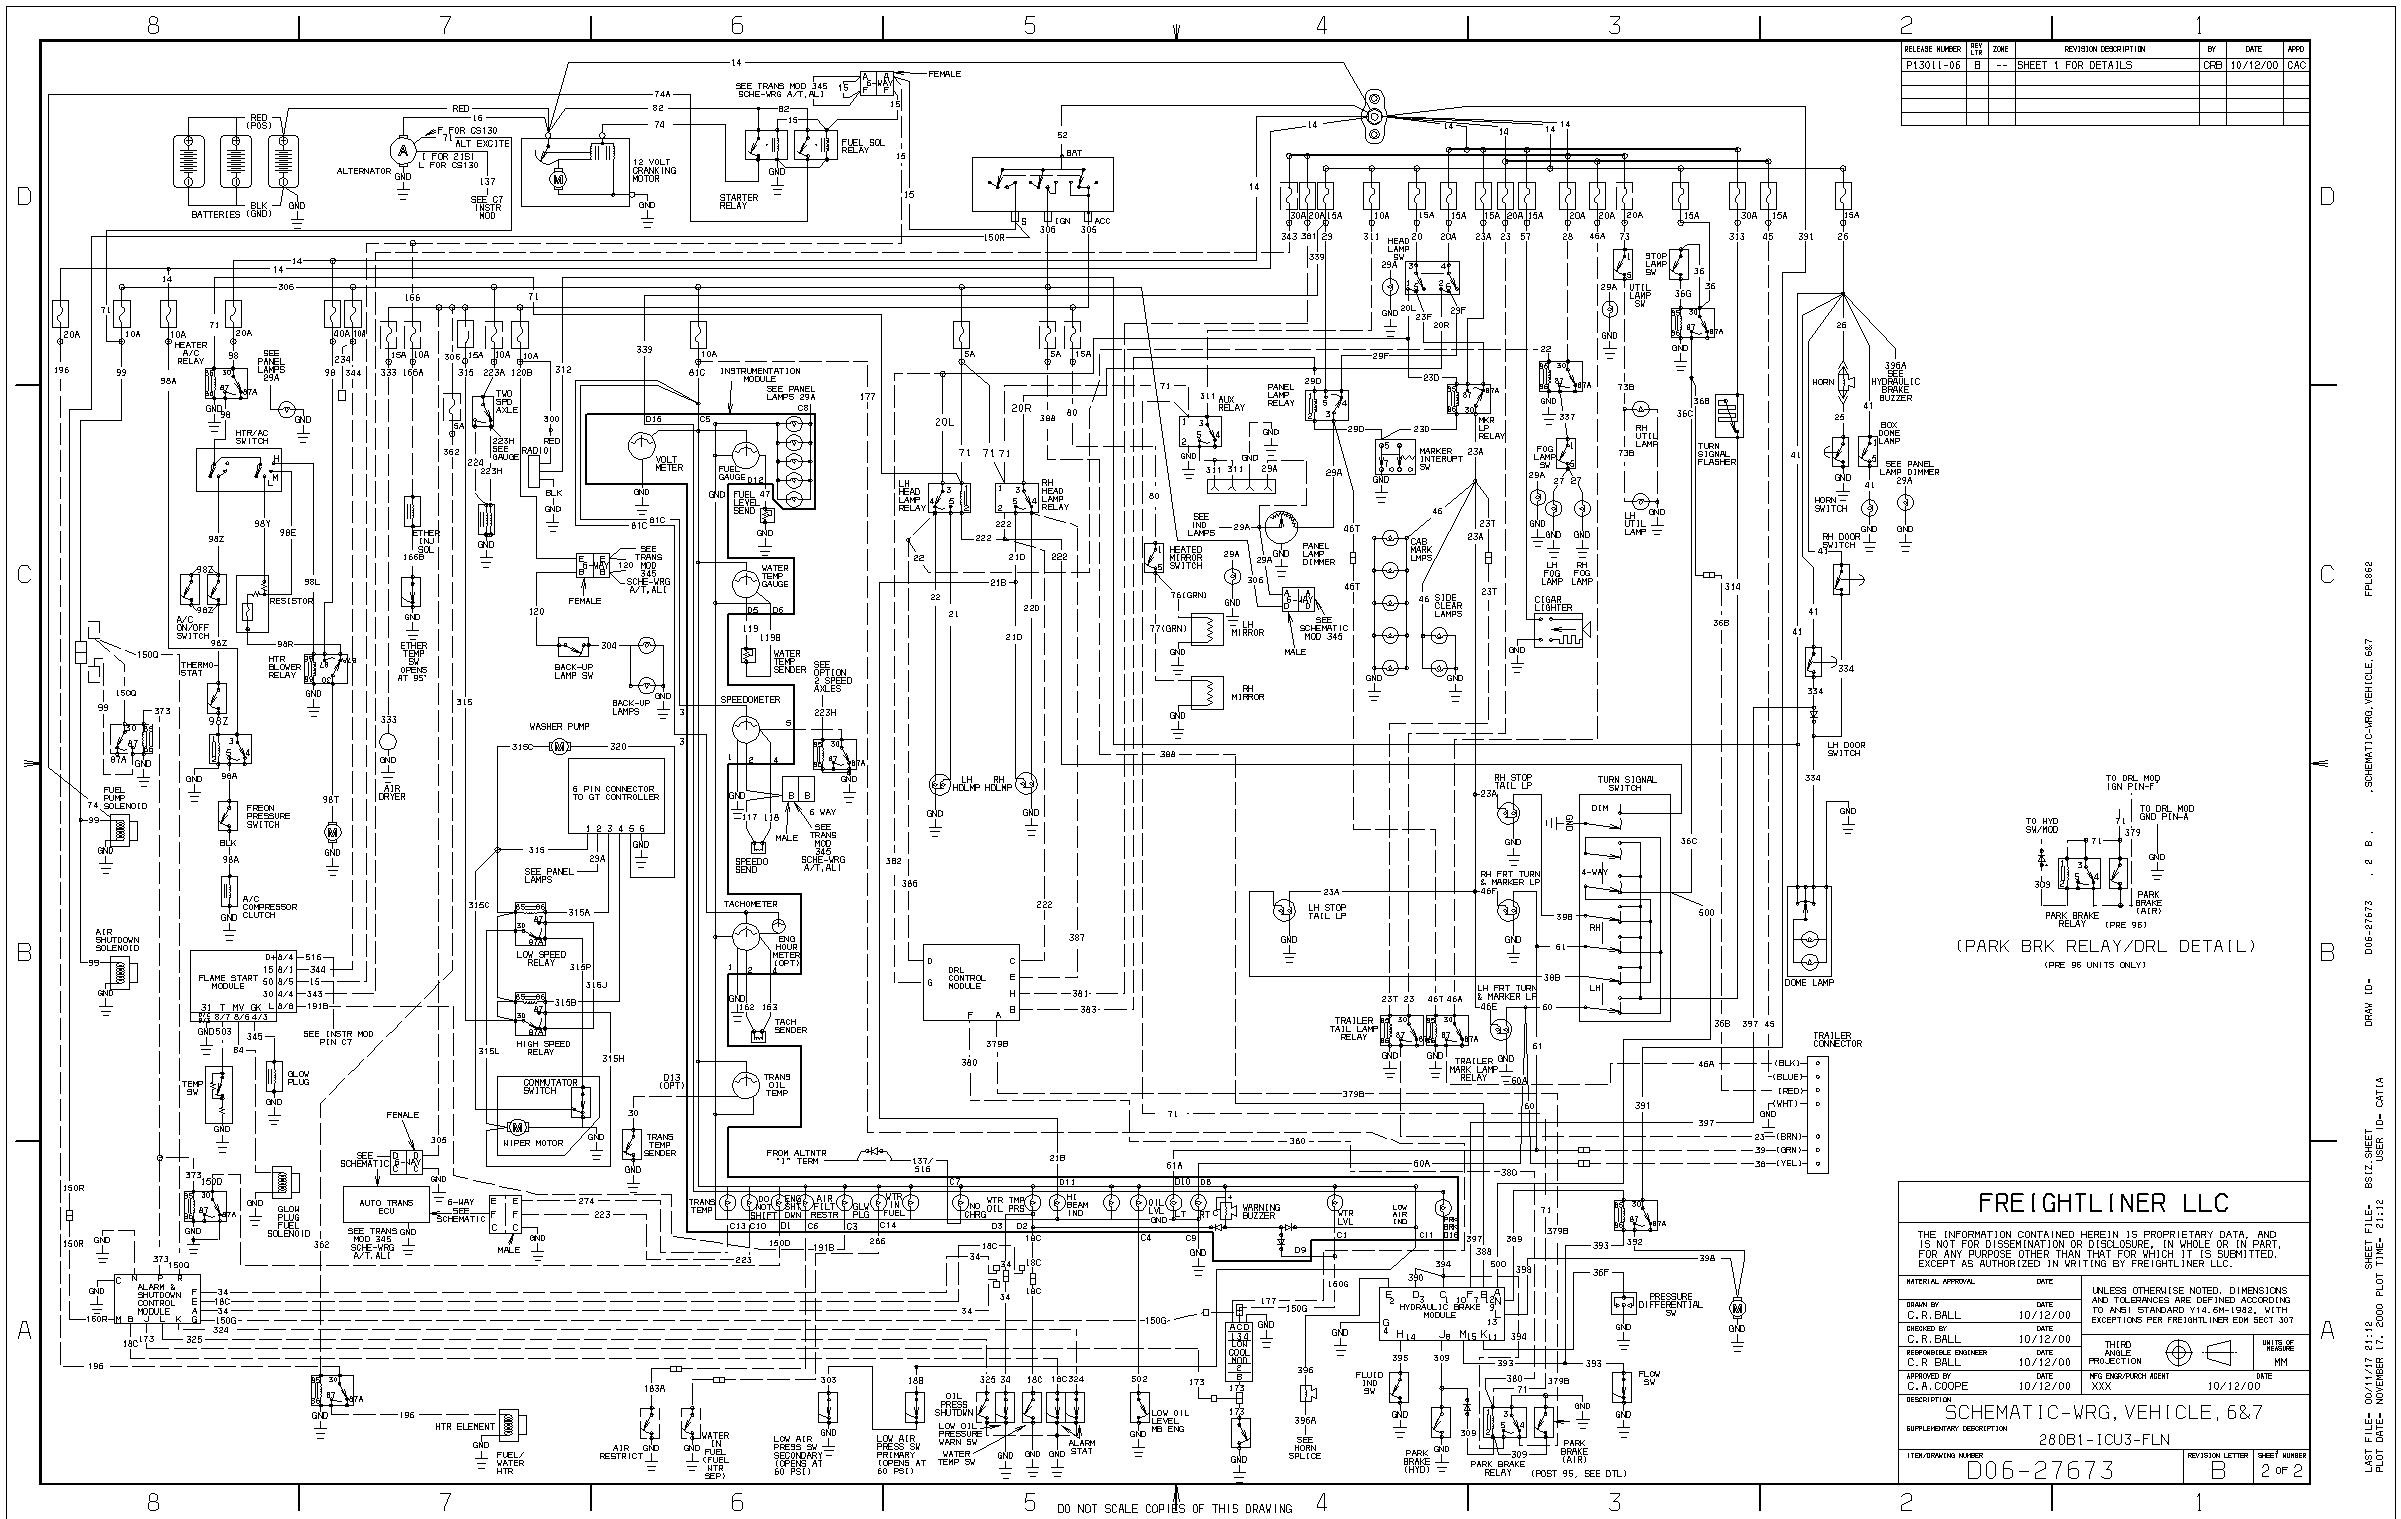 Engine Wiring Diagrams 1989 Chevrolet C1500 Diagram 1988 Toyota Camry Radio Sterling Truck 2003 2 4 Of